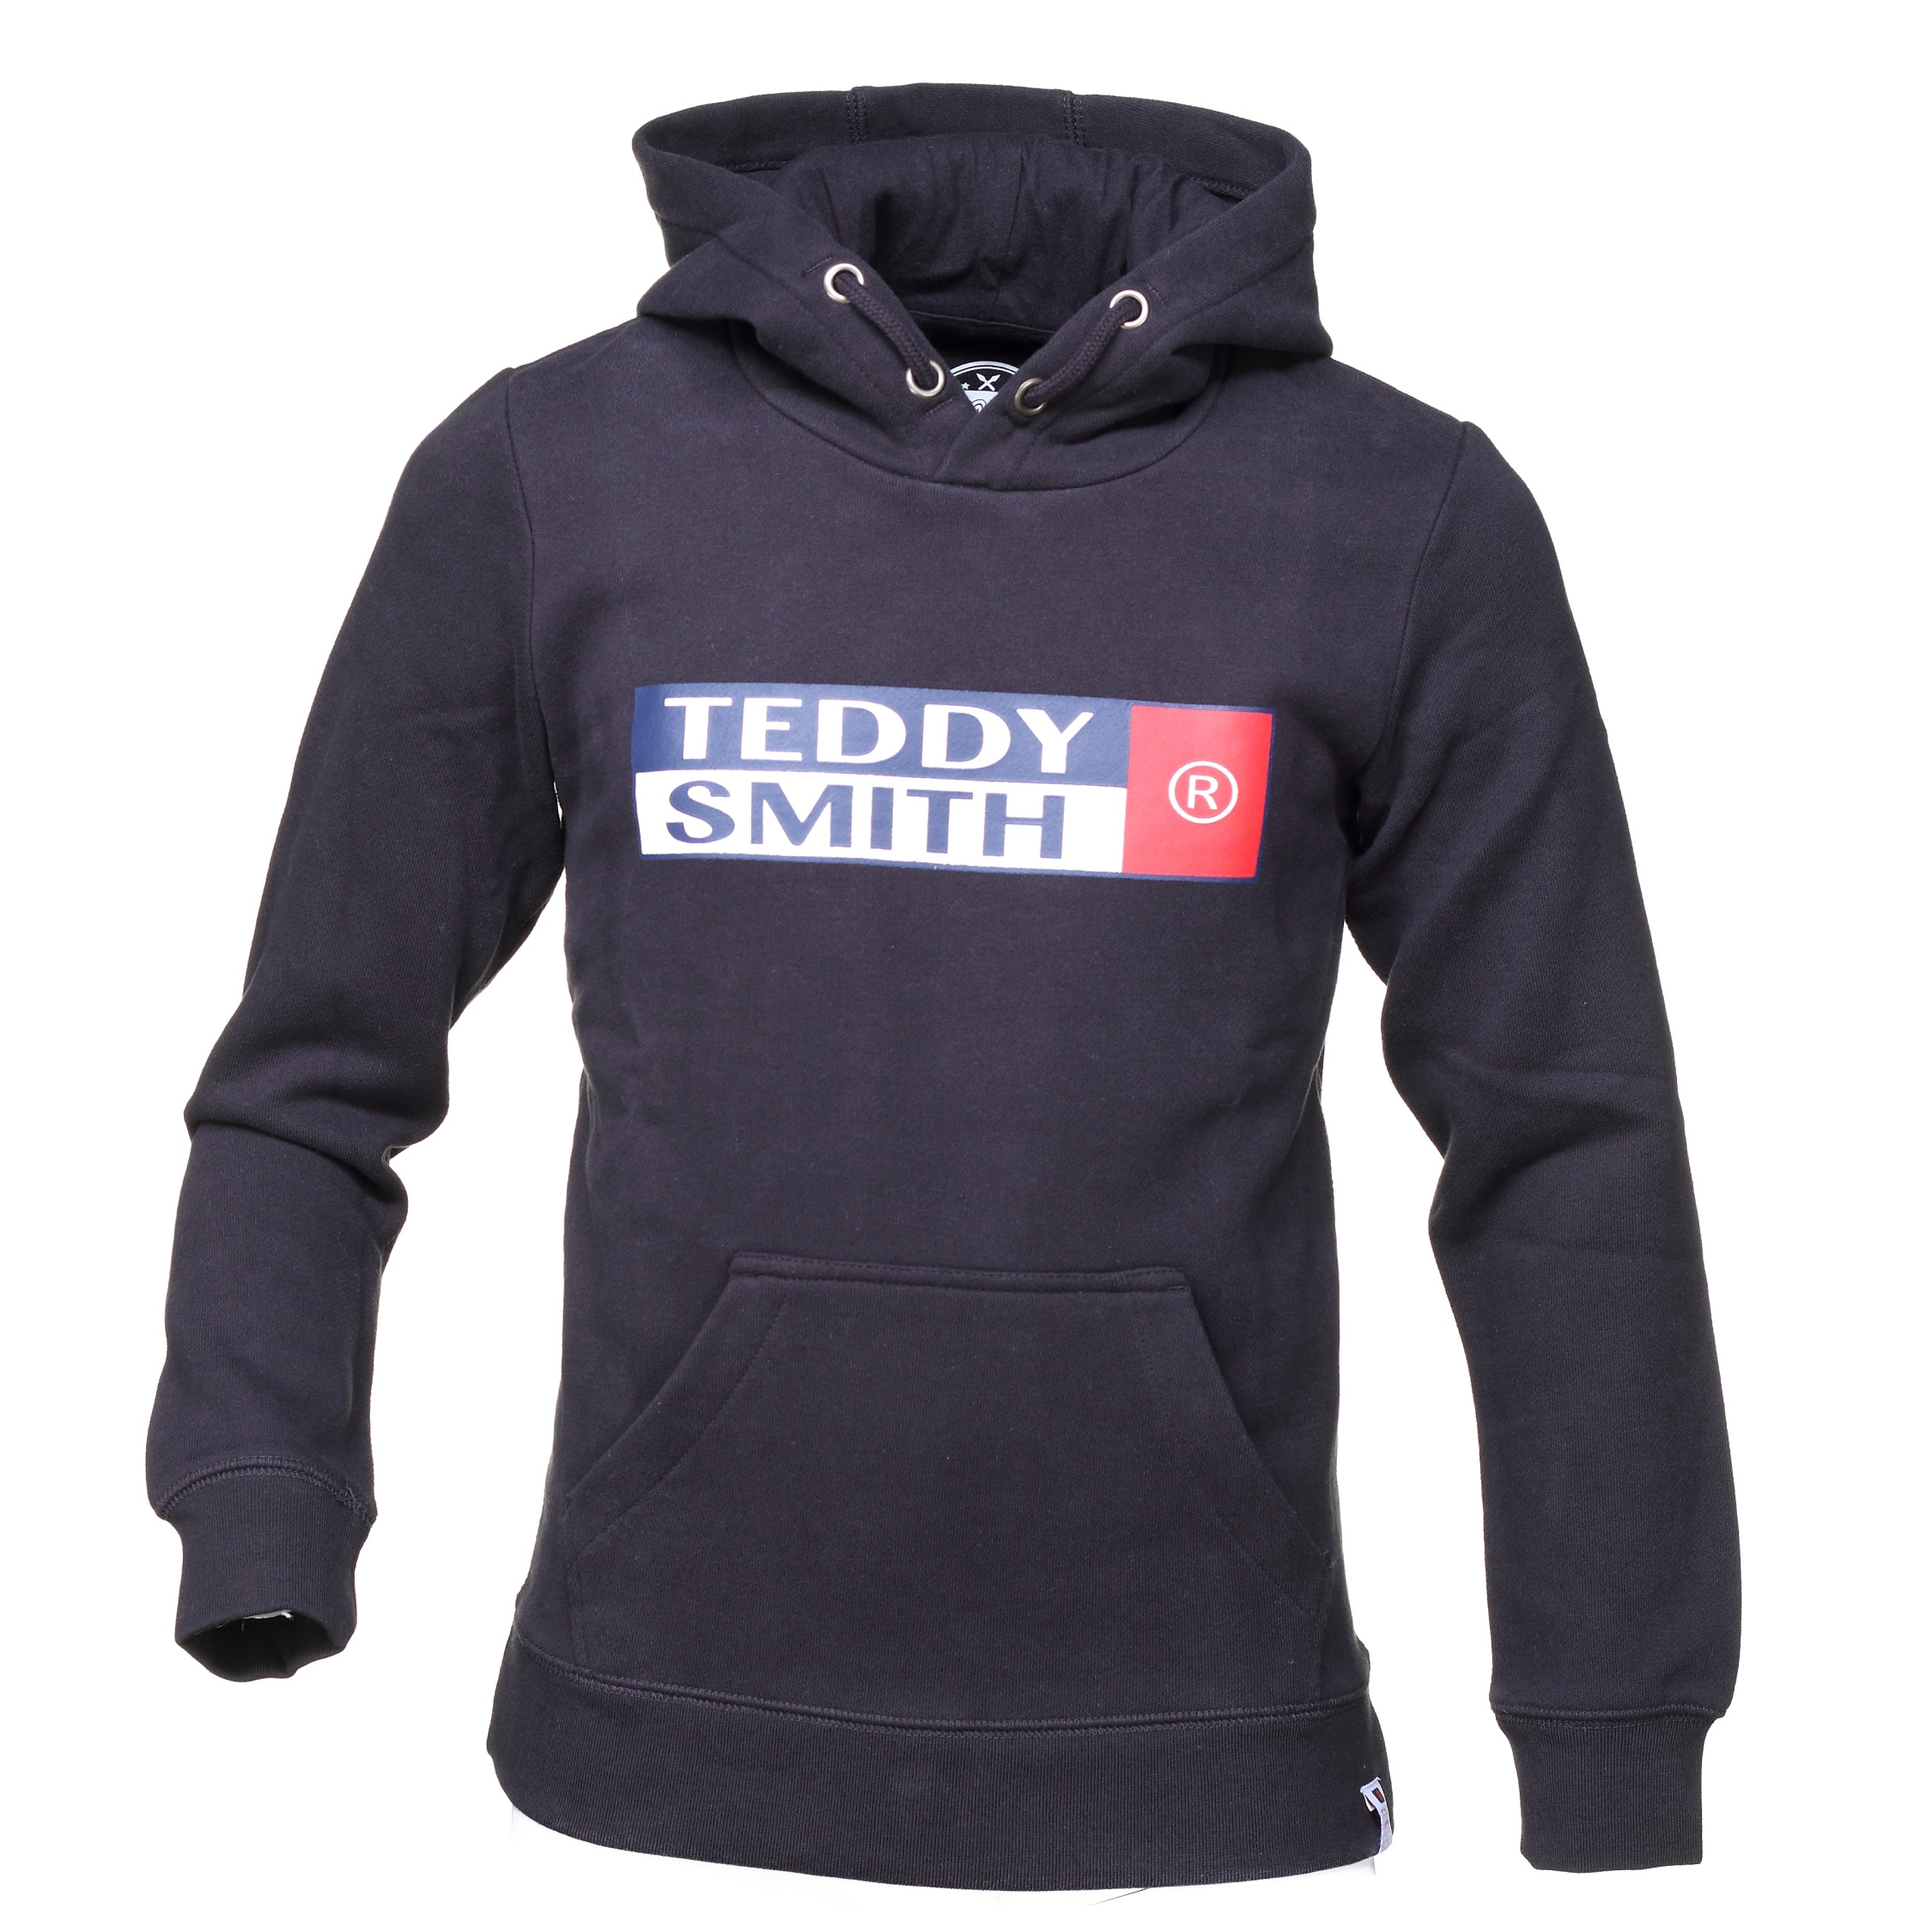 http://www.leadermode.com/154331/teddy-smith-setik-hoody-60805897d-351-dark-navy.jpg